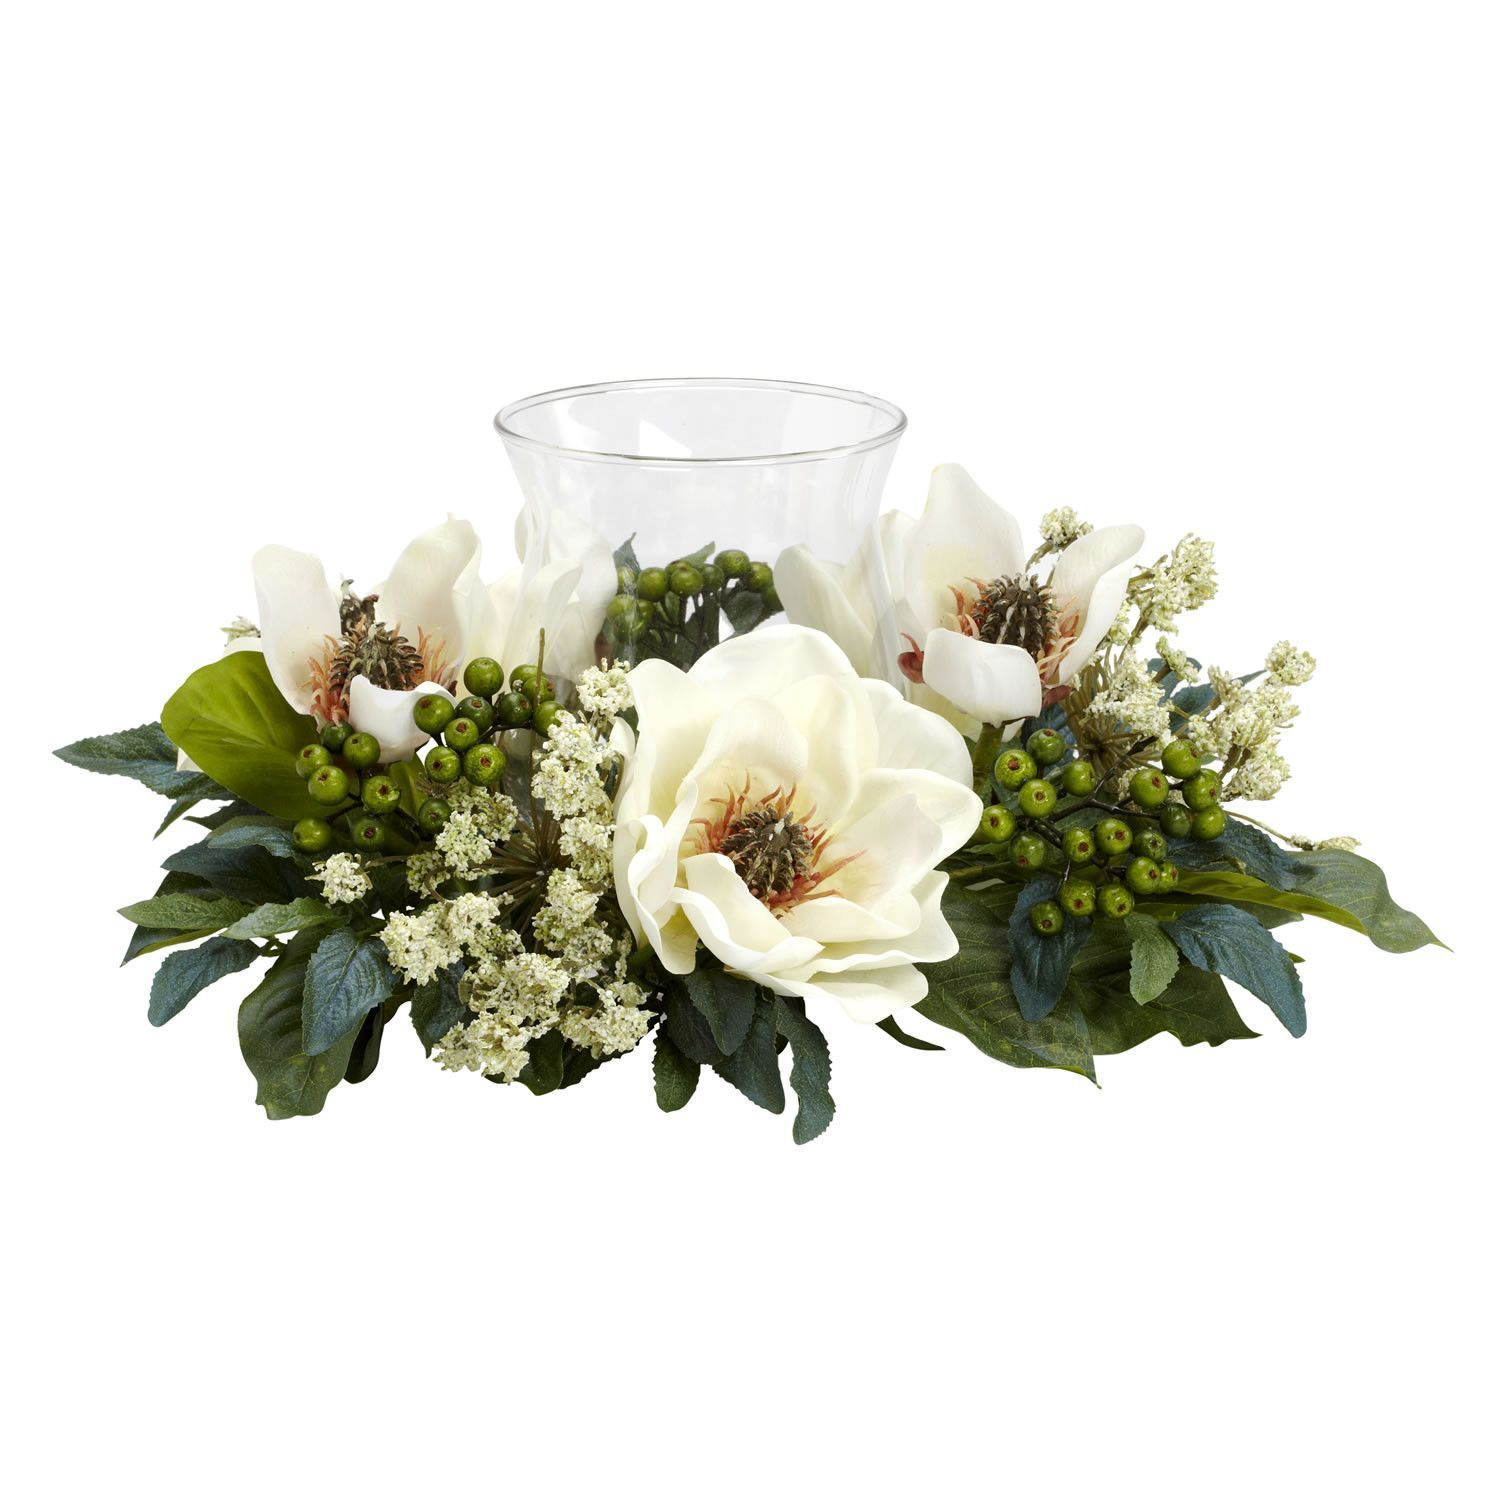 The Magnolia Is The Perfect Flower When You Want A Soft Warm Feeling From Yo Flower Arrangements Magnolia Centerpiece Artificial Flower Arrangements